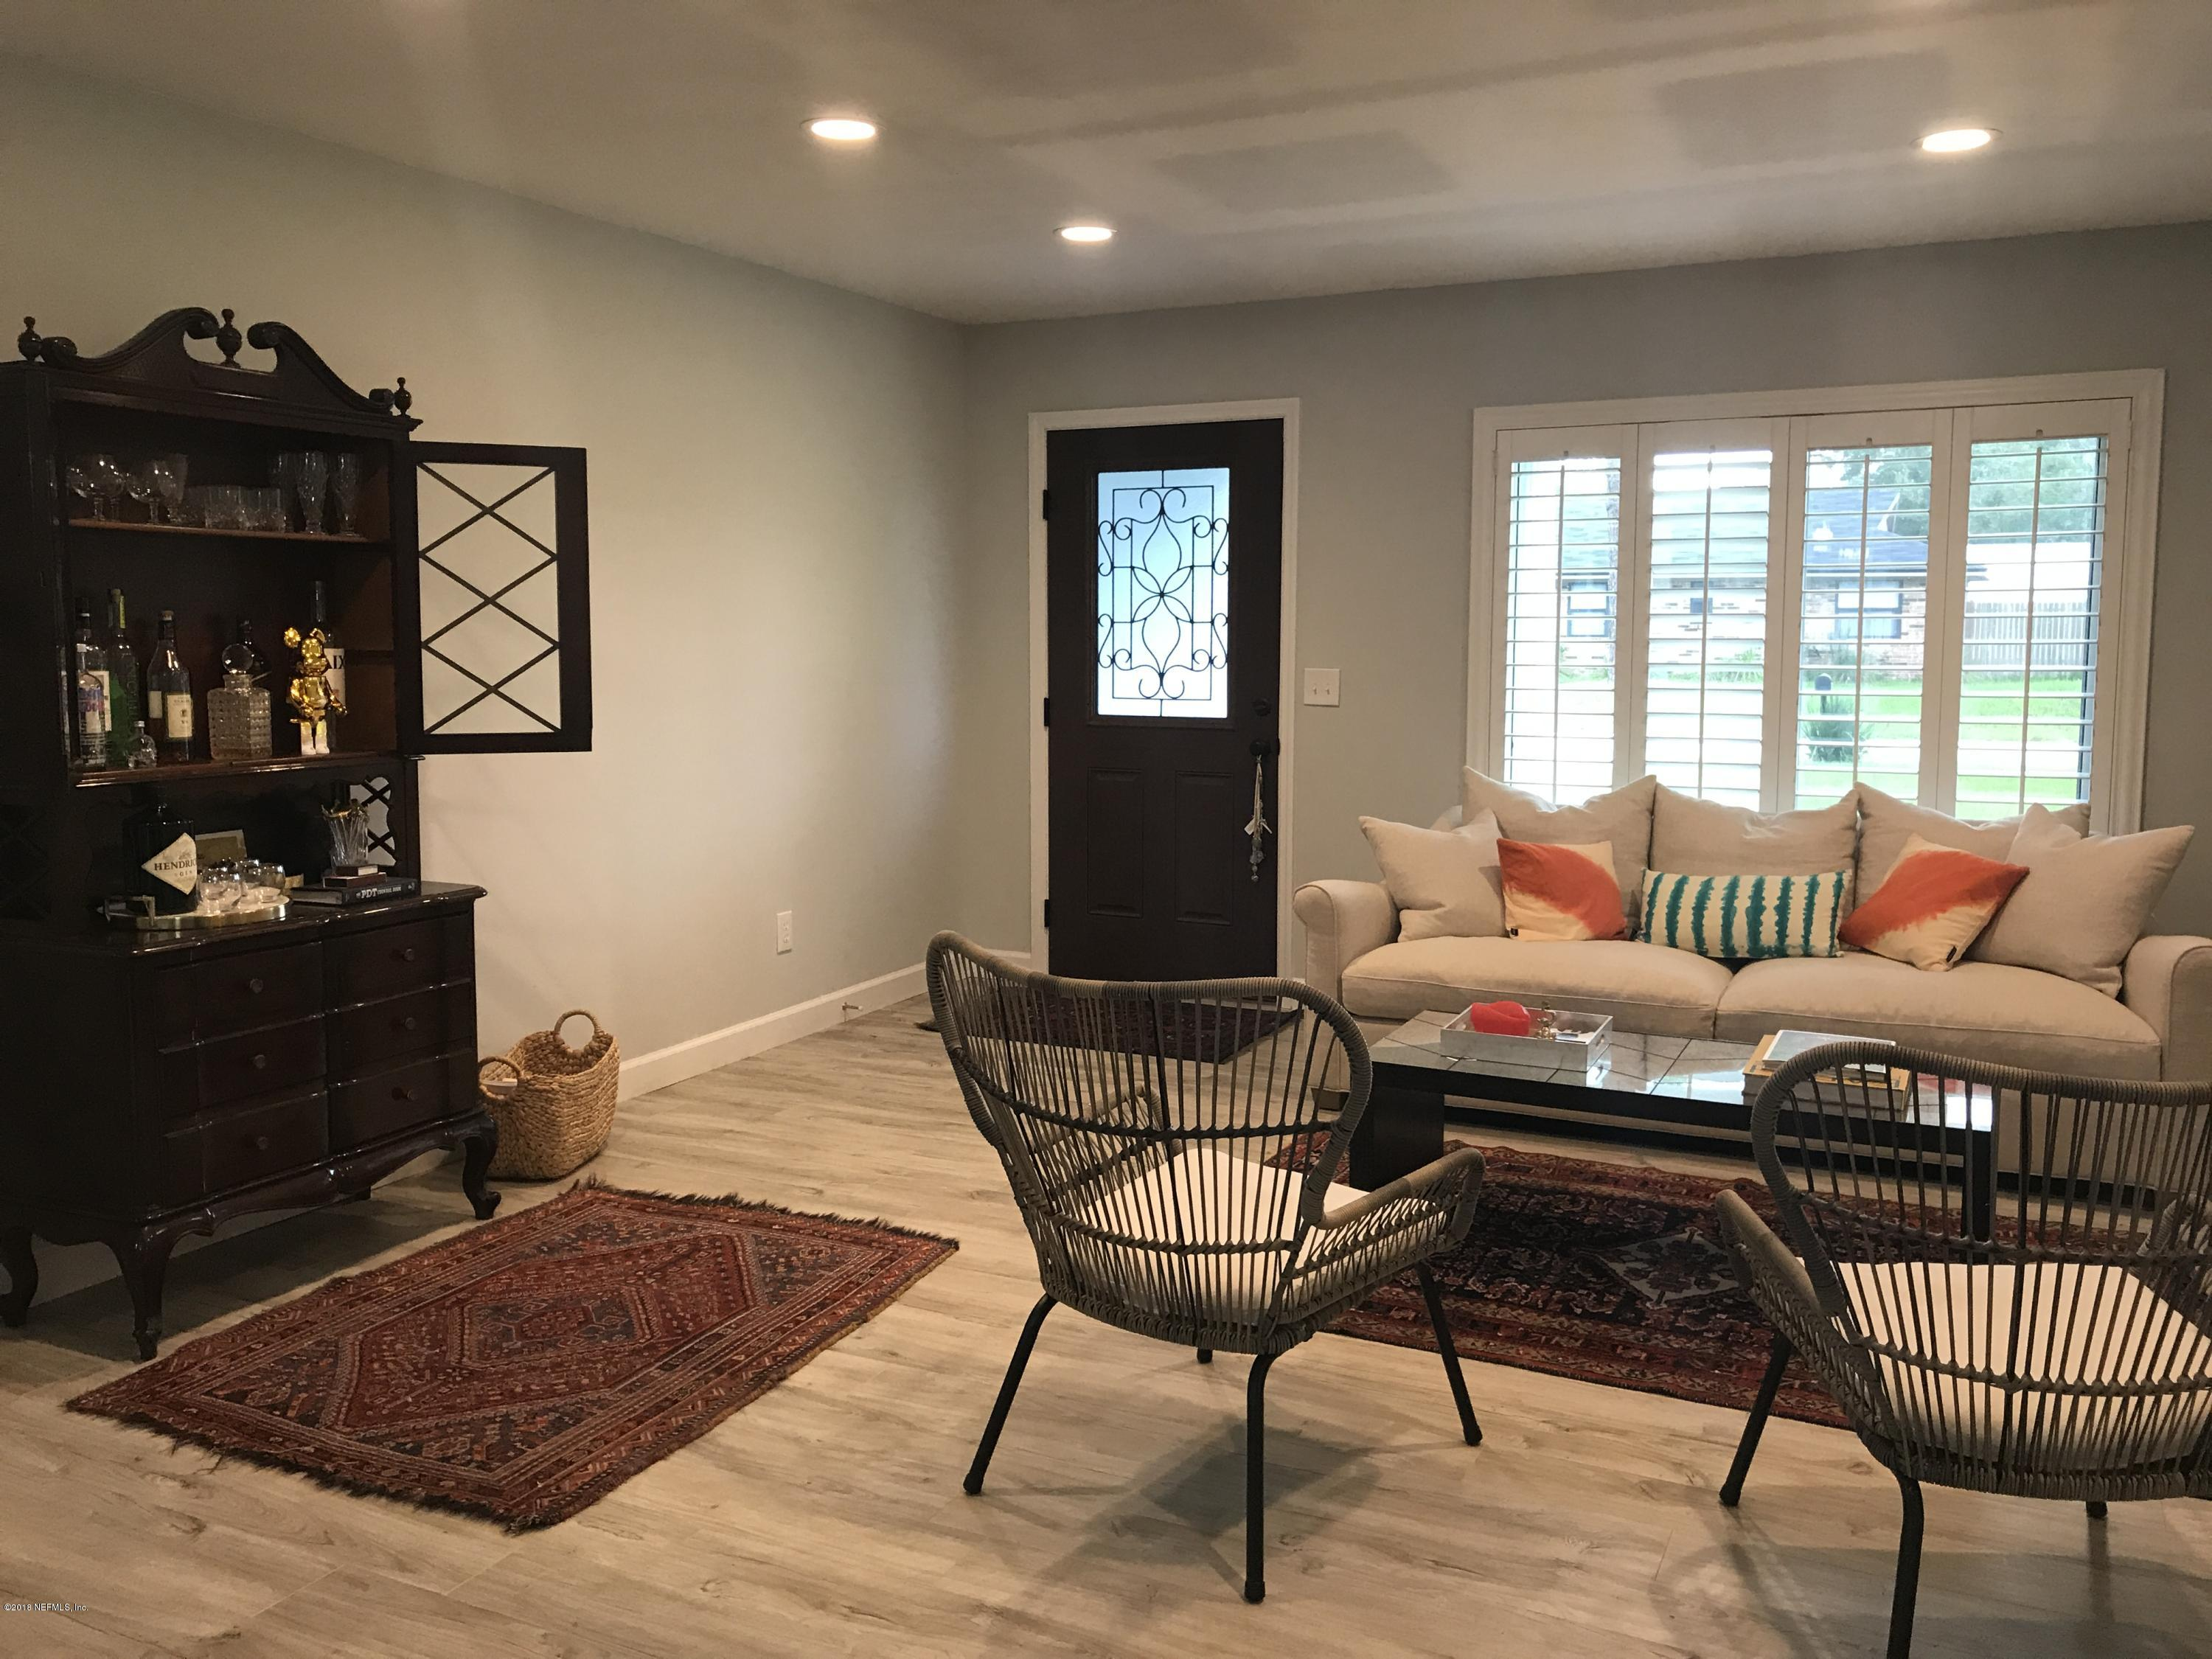 117 BLUEFISH, PONTE VEDRA BEACH, FLORIDA 32082, 3 Bedrooms Bedrooms, ,2 BathroomsBathrooms,Residential - single family,For sale,BLUEFISH,961905